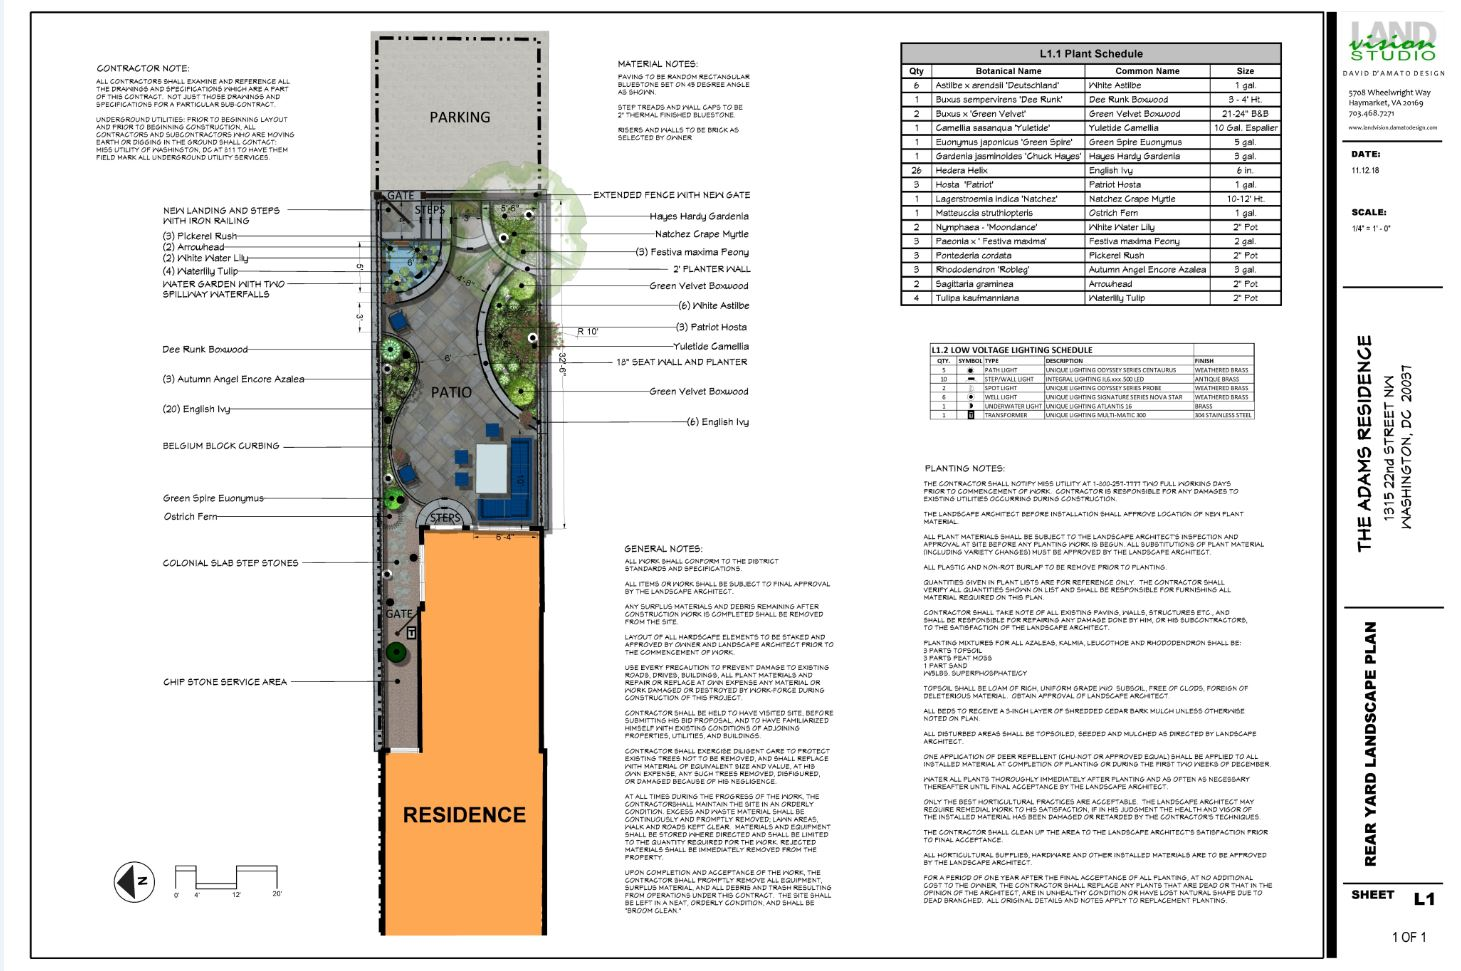 residential landscape architecture plan for DC courtyard project